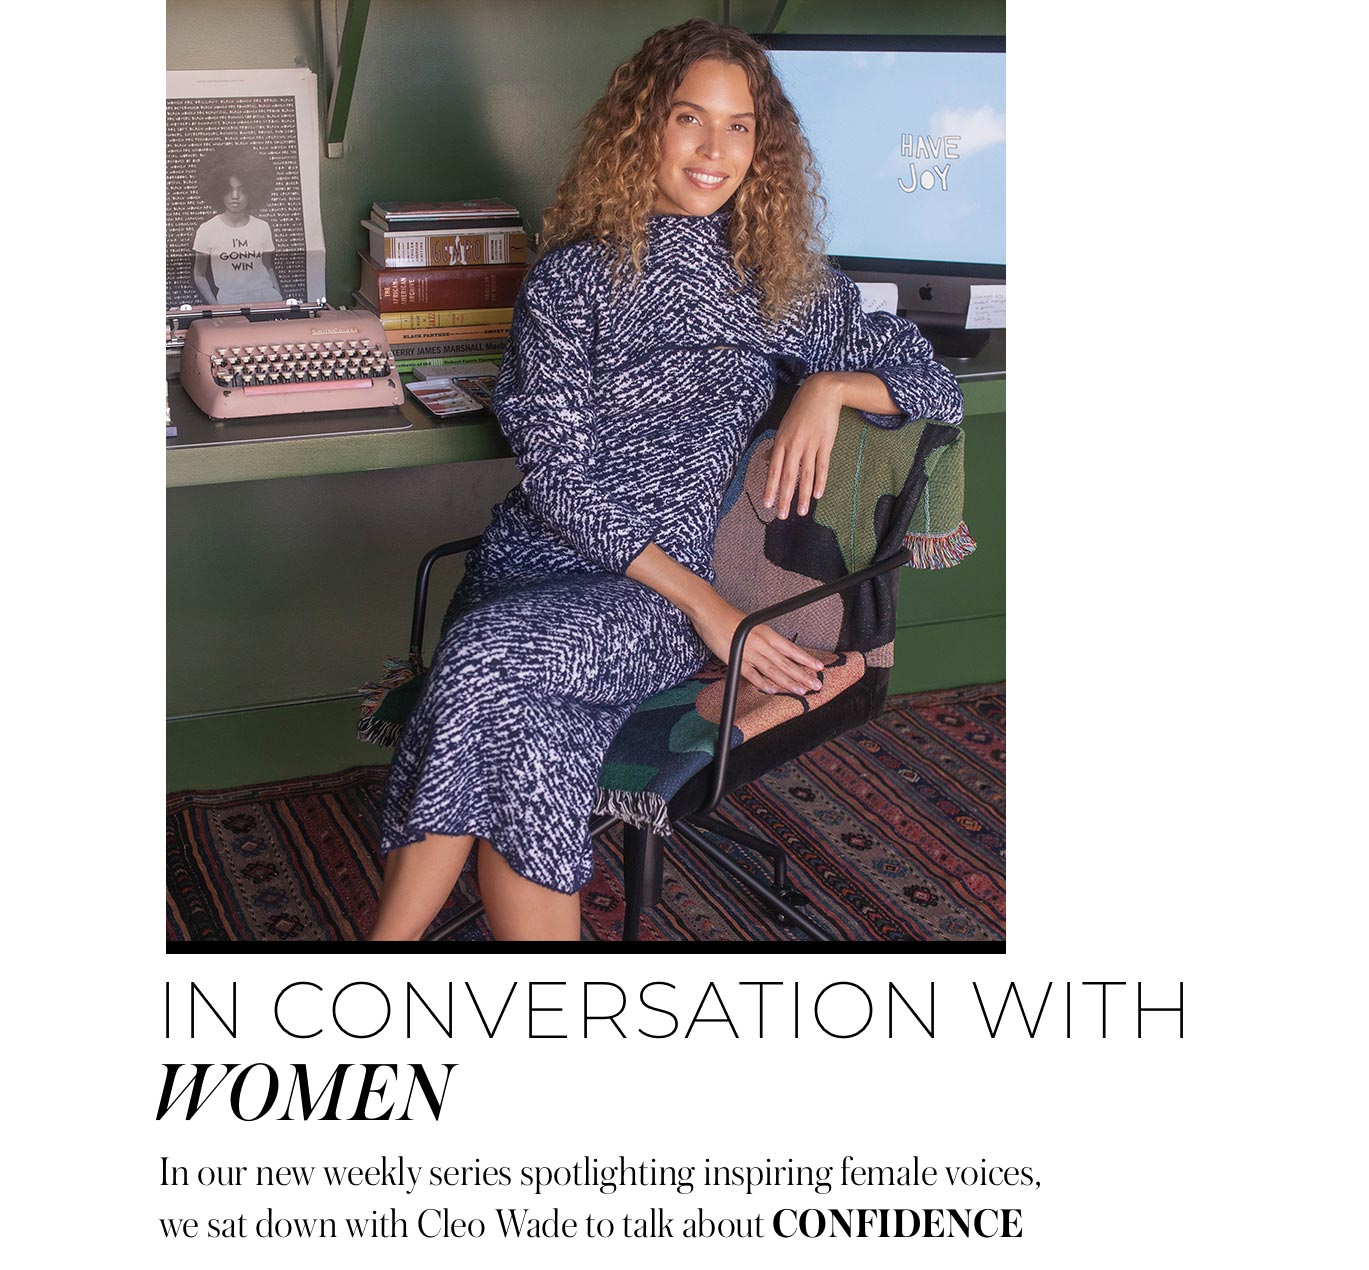 In Conversation With Women In our new weekly series spotlighting inspiring female voices, we sat down with Cleo Wade to talk about confidence